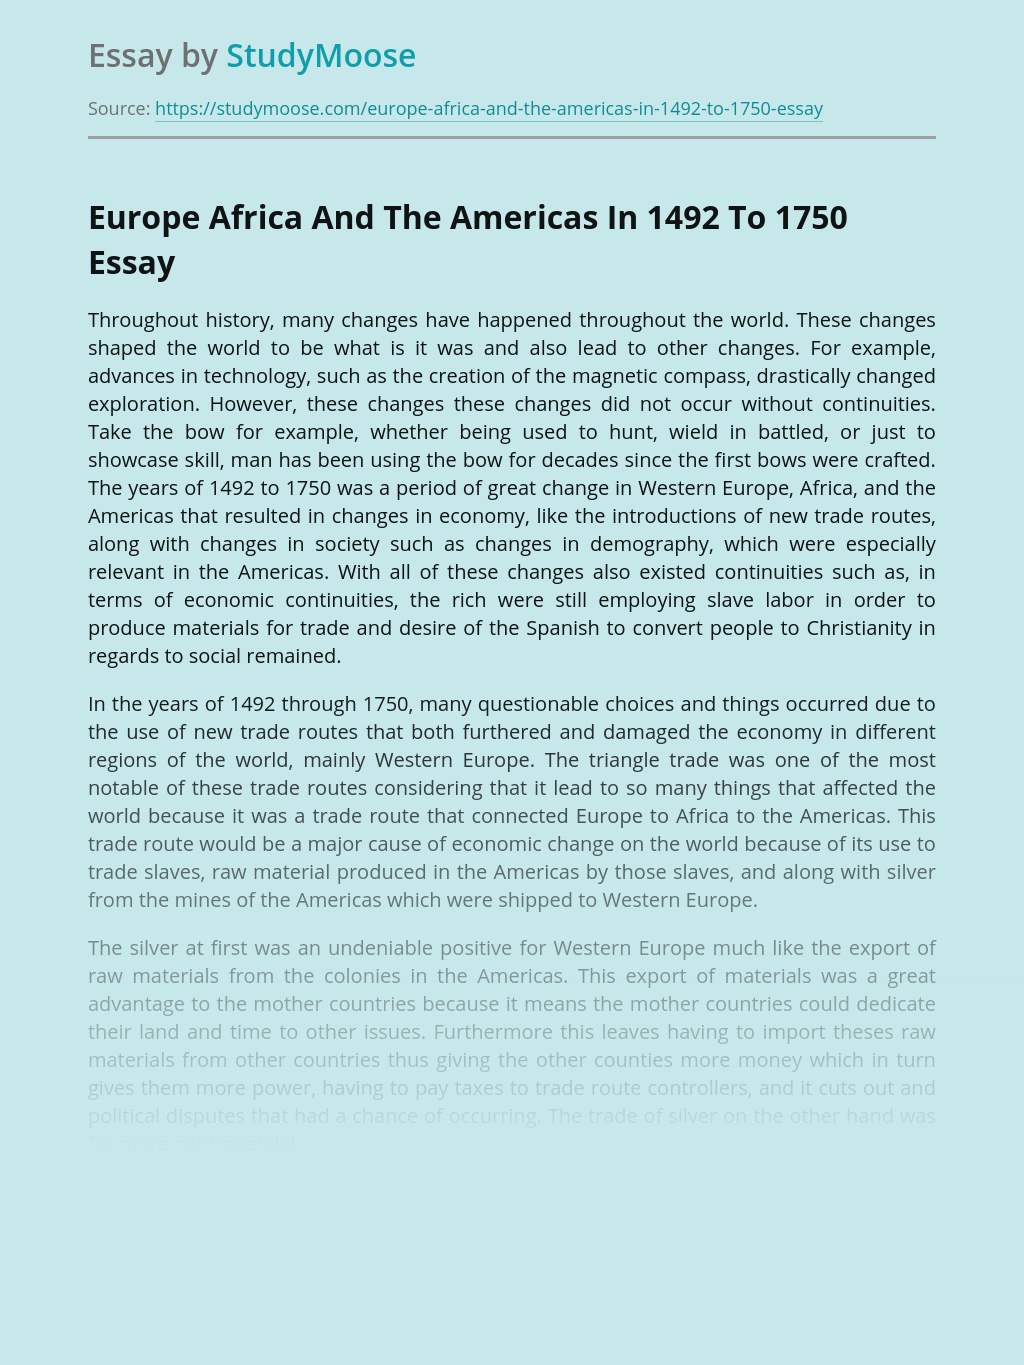 Europe Africa And The Americas In 1492 To 1750